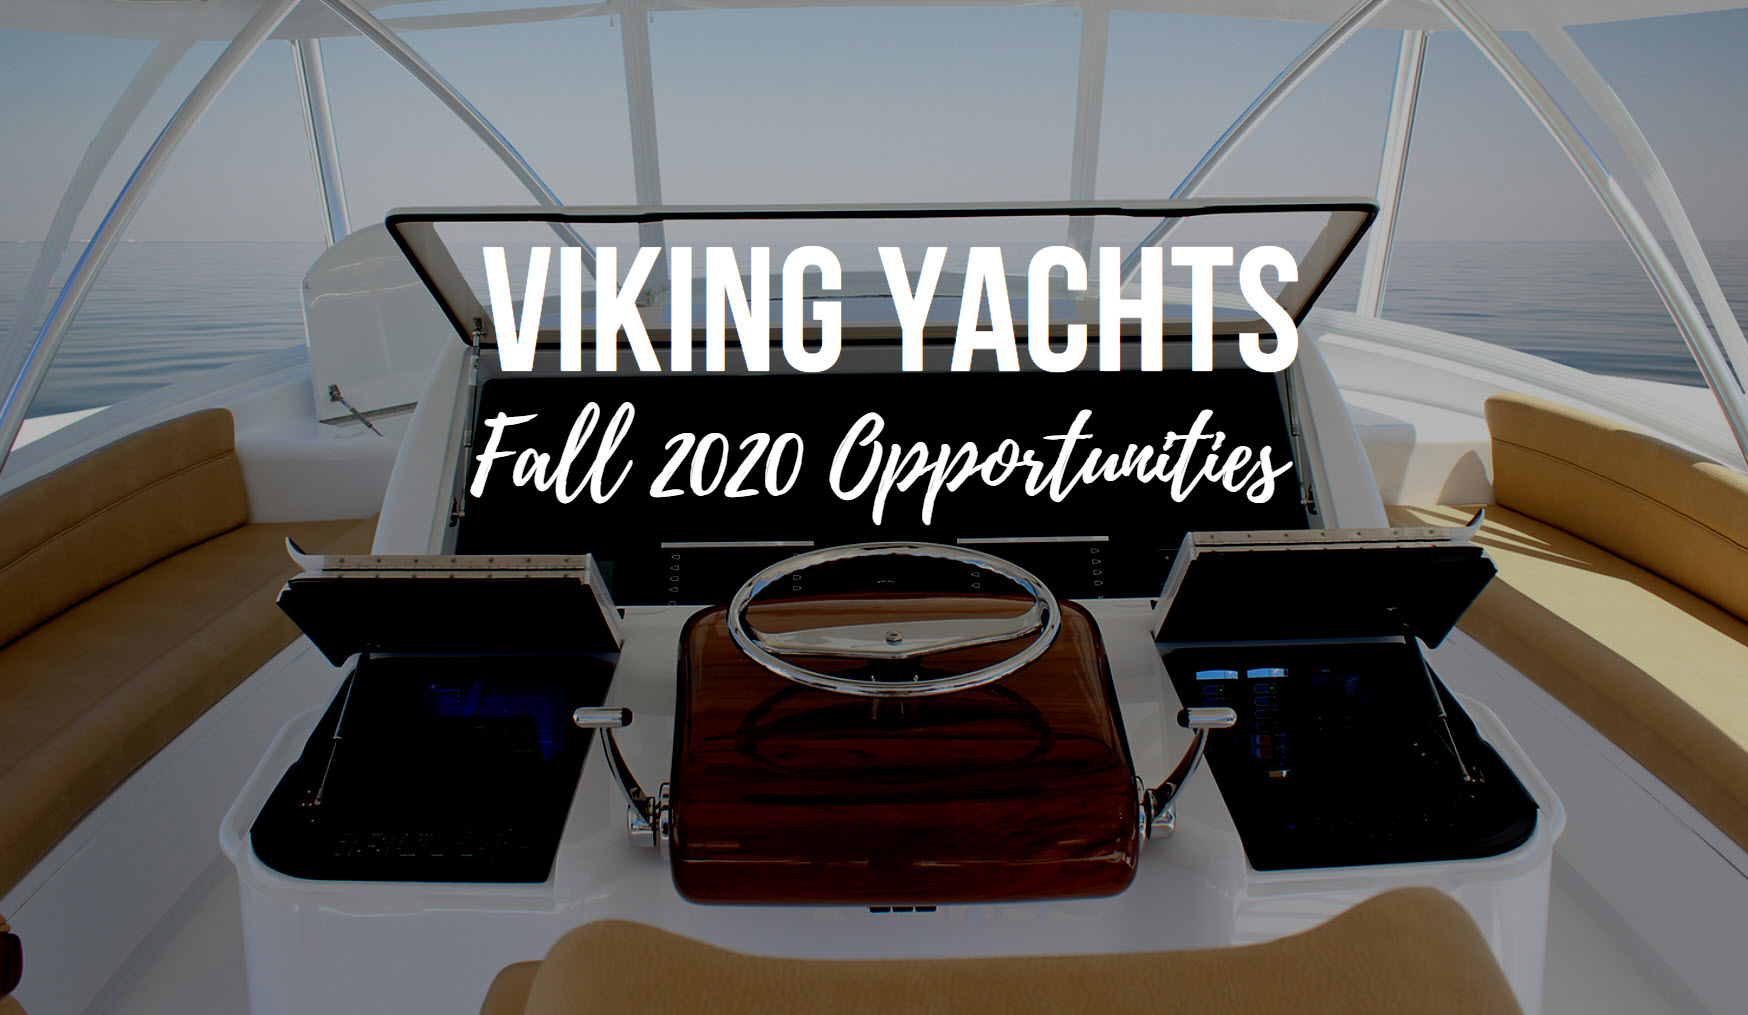 viking yachts for sale in 2020